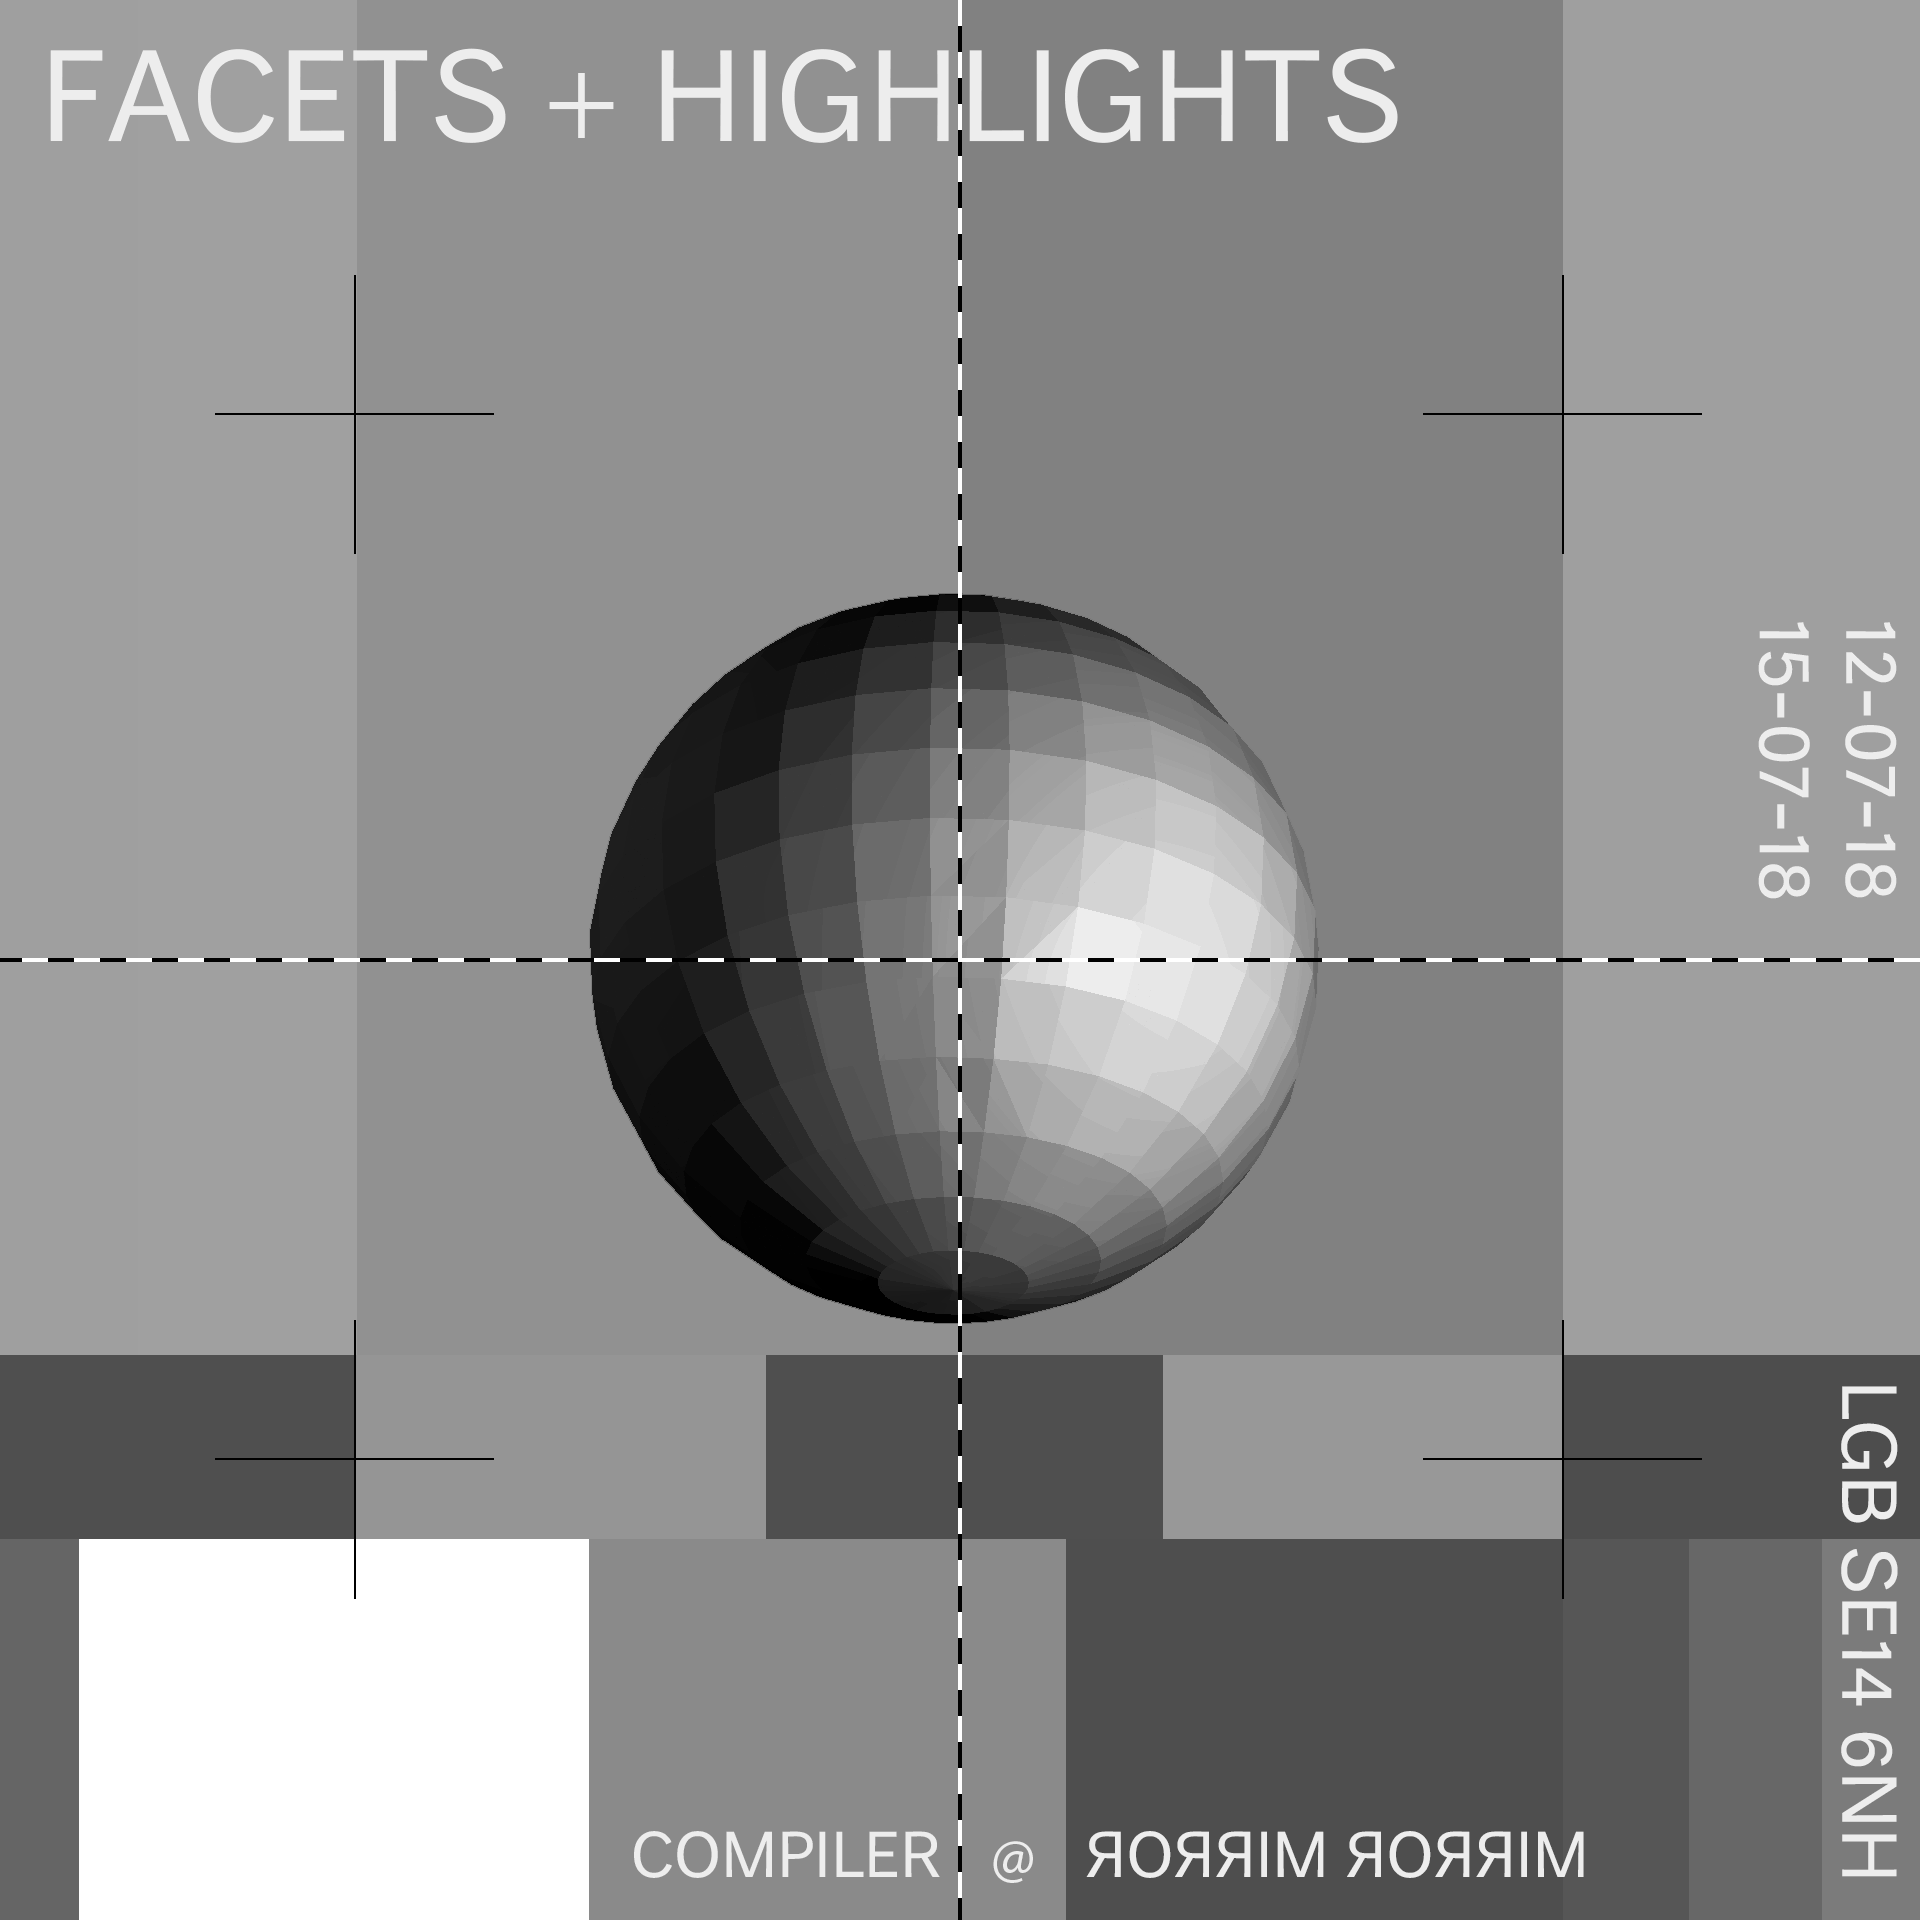 Facets + Highlights